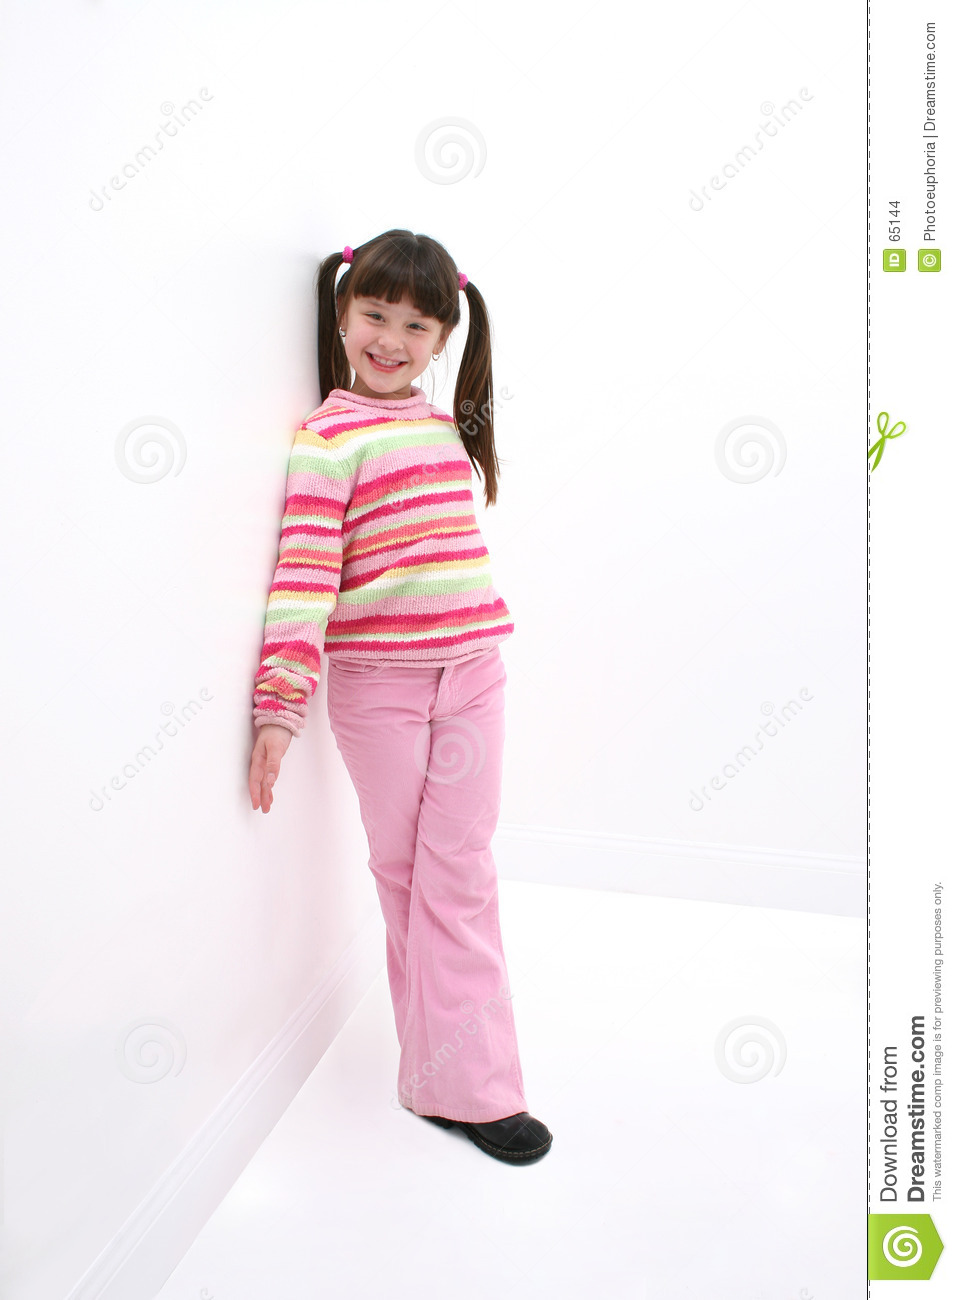 hand plane clipart with Stock Images Child Leaning Against Wall Image65144 on Capas De Facebook  o Fazer also Time Is Of The Essence furthermore 1437132107 264086 moreover A Young Boy Playing With A Paper Airplane additionally Smartphone Images Free.